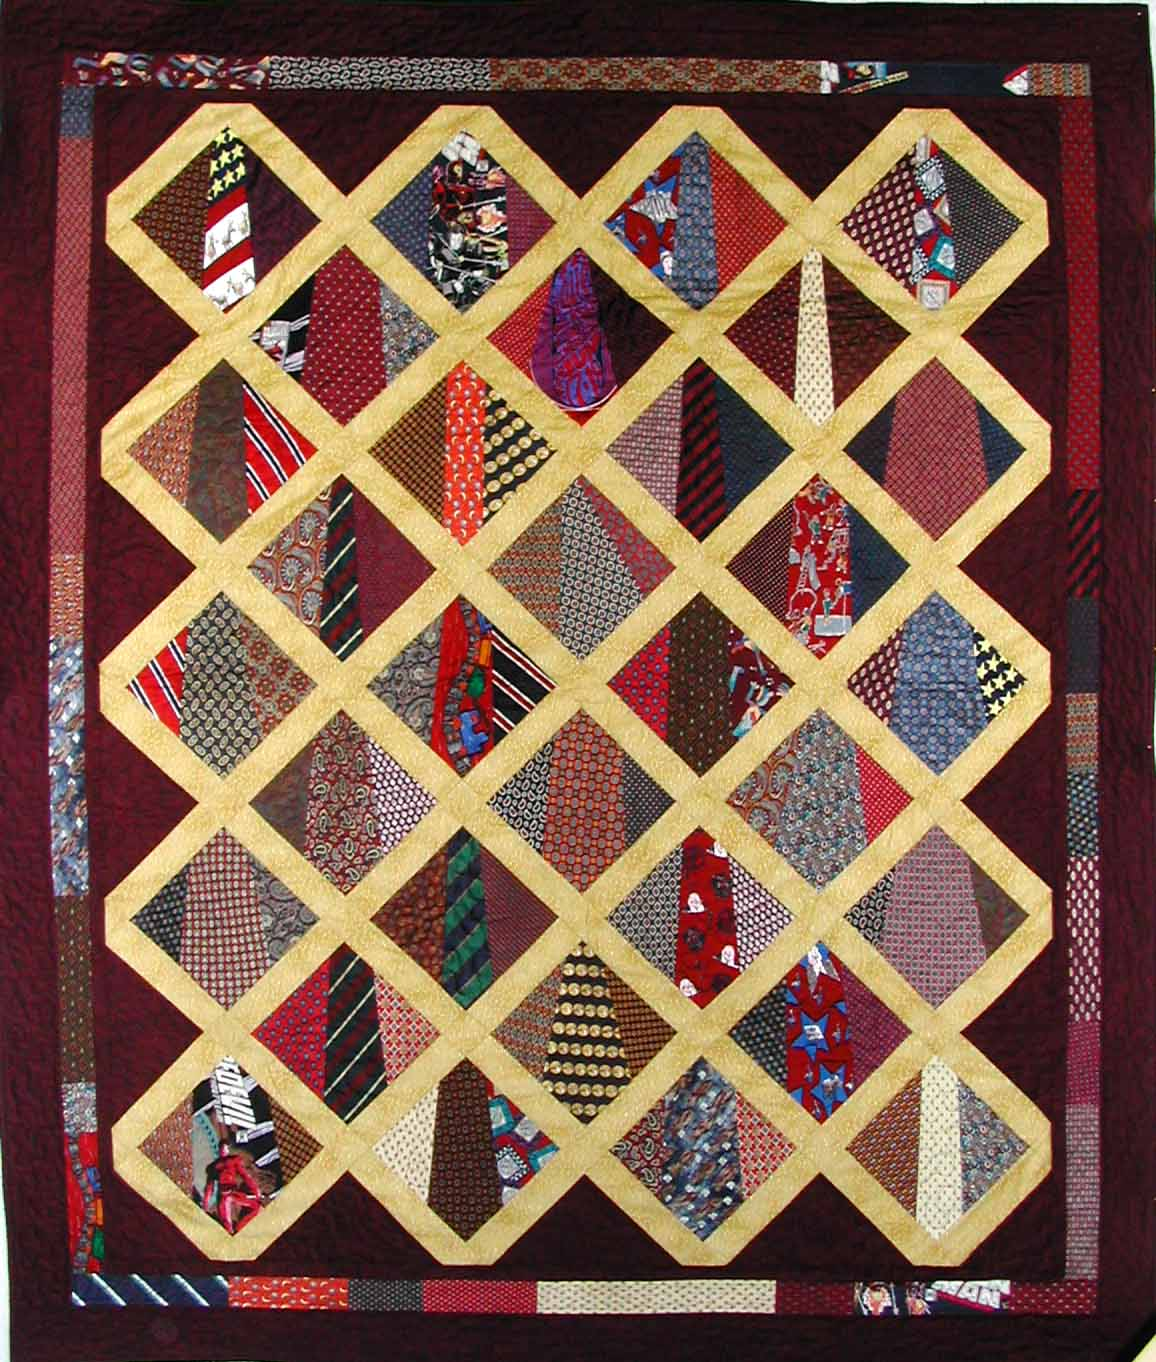 Copy Of Quilts - Lessons - Tes Teach